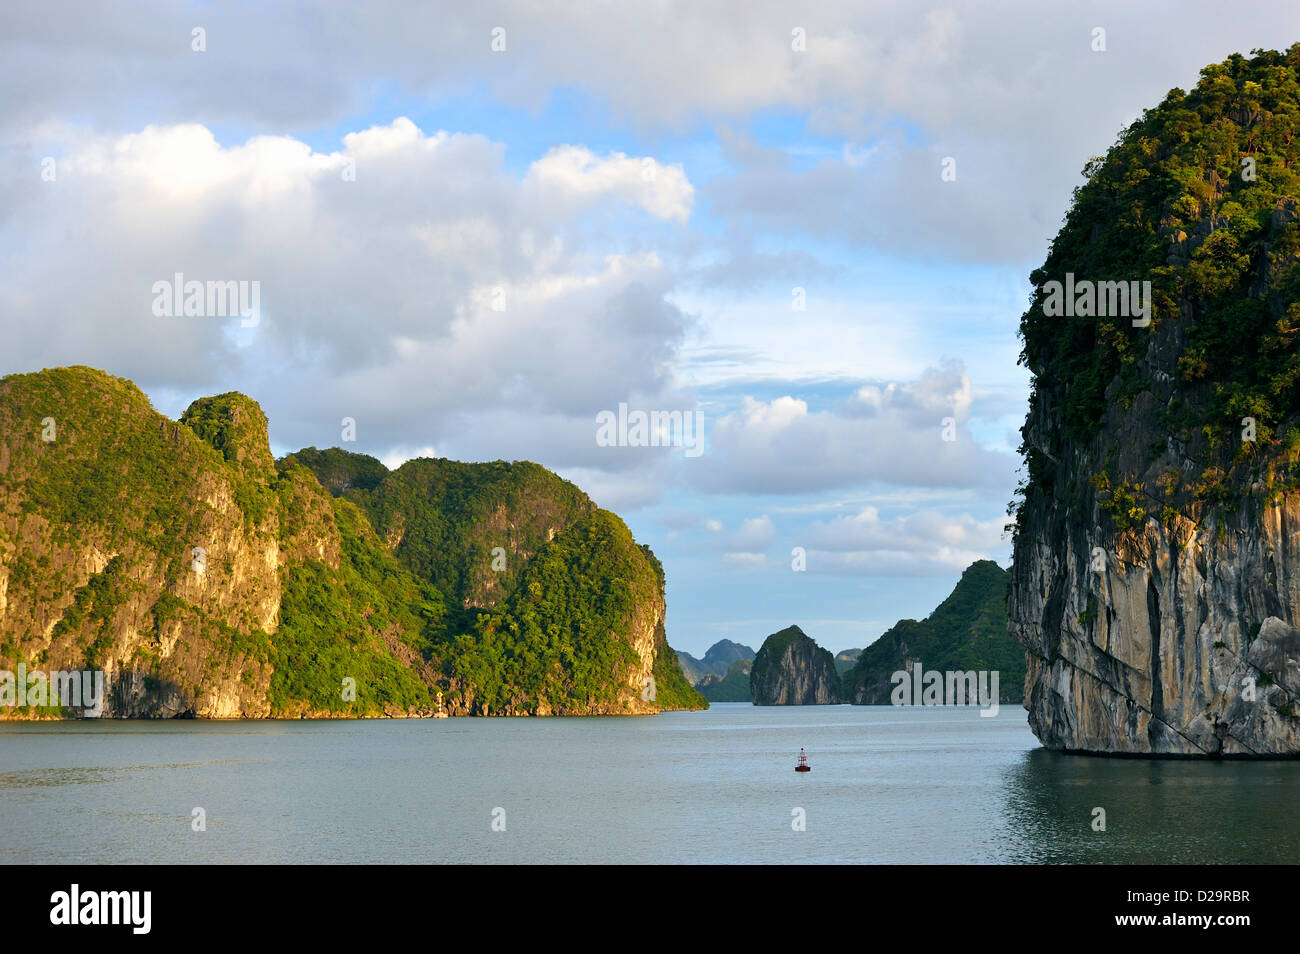 Halong Bay, Vietnam - Stock Image